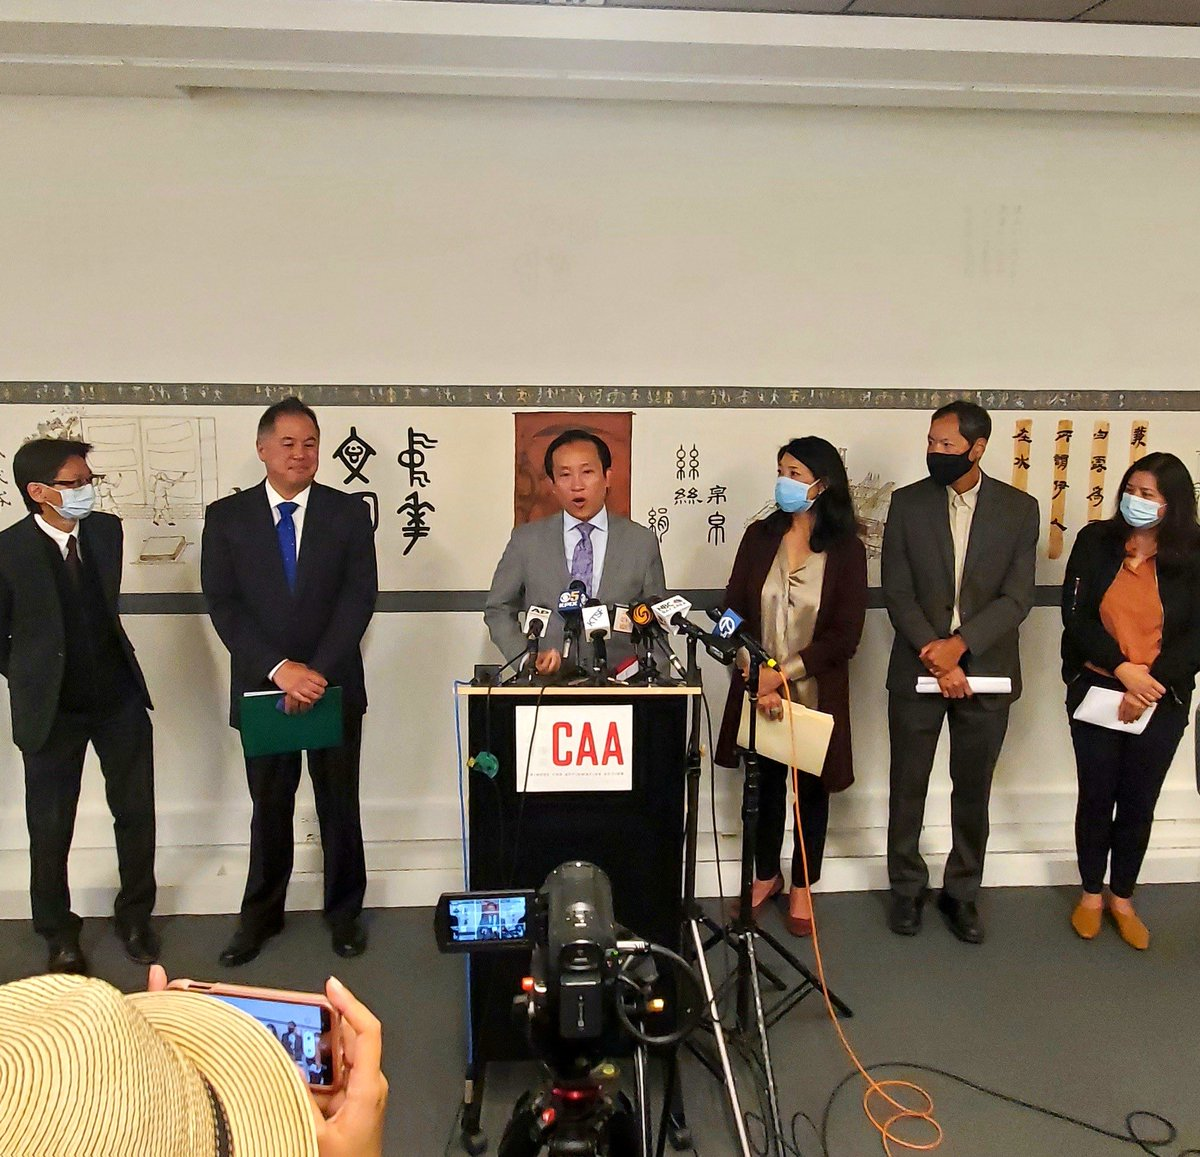 Celebrating California's historic passage of the #APIEquityBudget!  $156M is the largest state investment in the country to #StopAsianHate, thanks to the leadership of @APILegCaucus @StopAAPIHate @CAASanFrancisco @sfsuaas1969 @PhilTing @GavinNewsom & 150 API organizations. https://t.co/6o31M96y6F